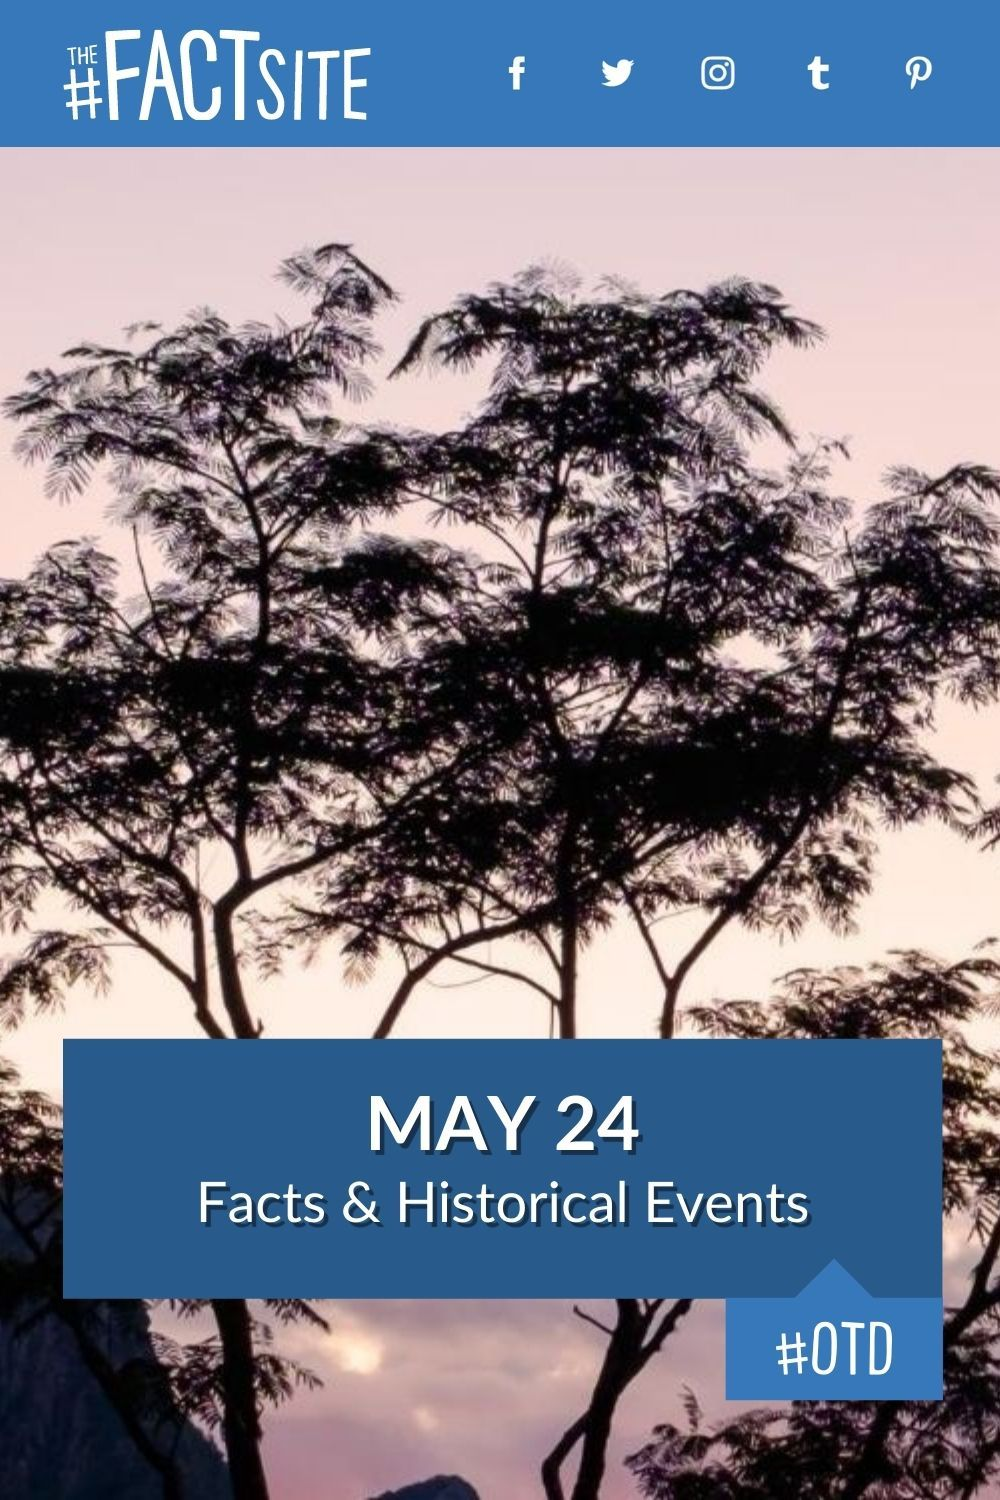 Facts & Historic Events That Happened on May 24